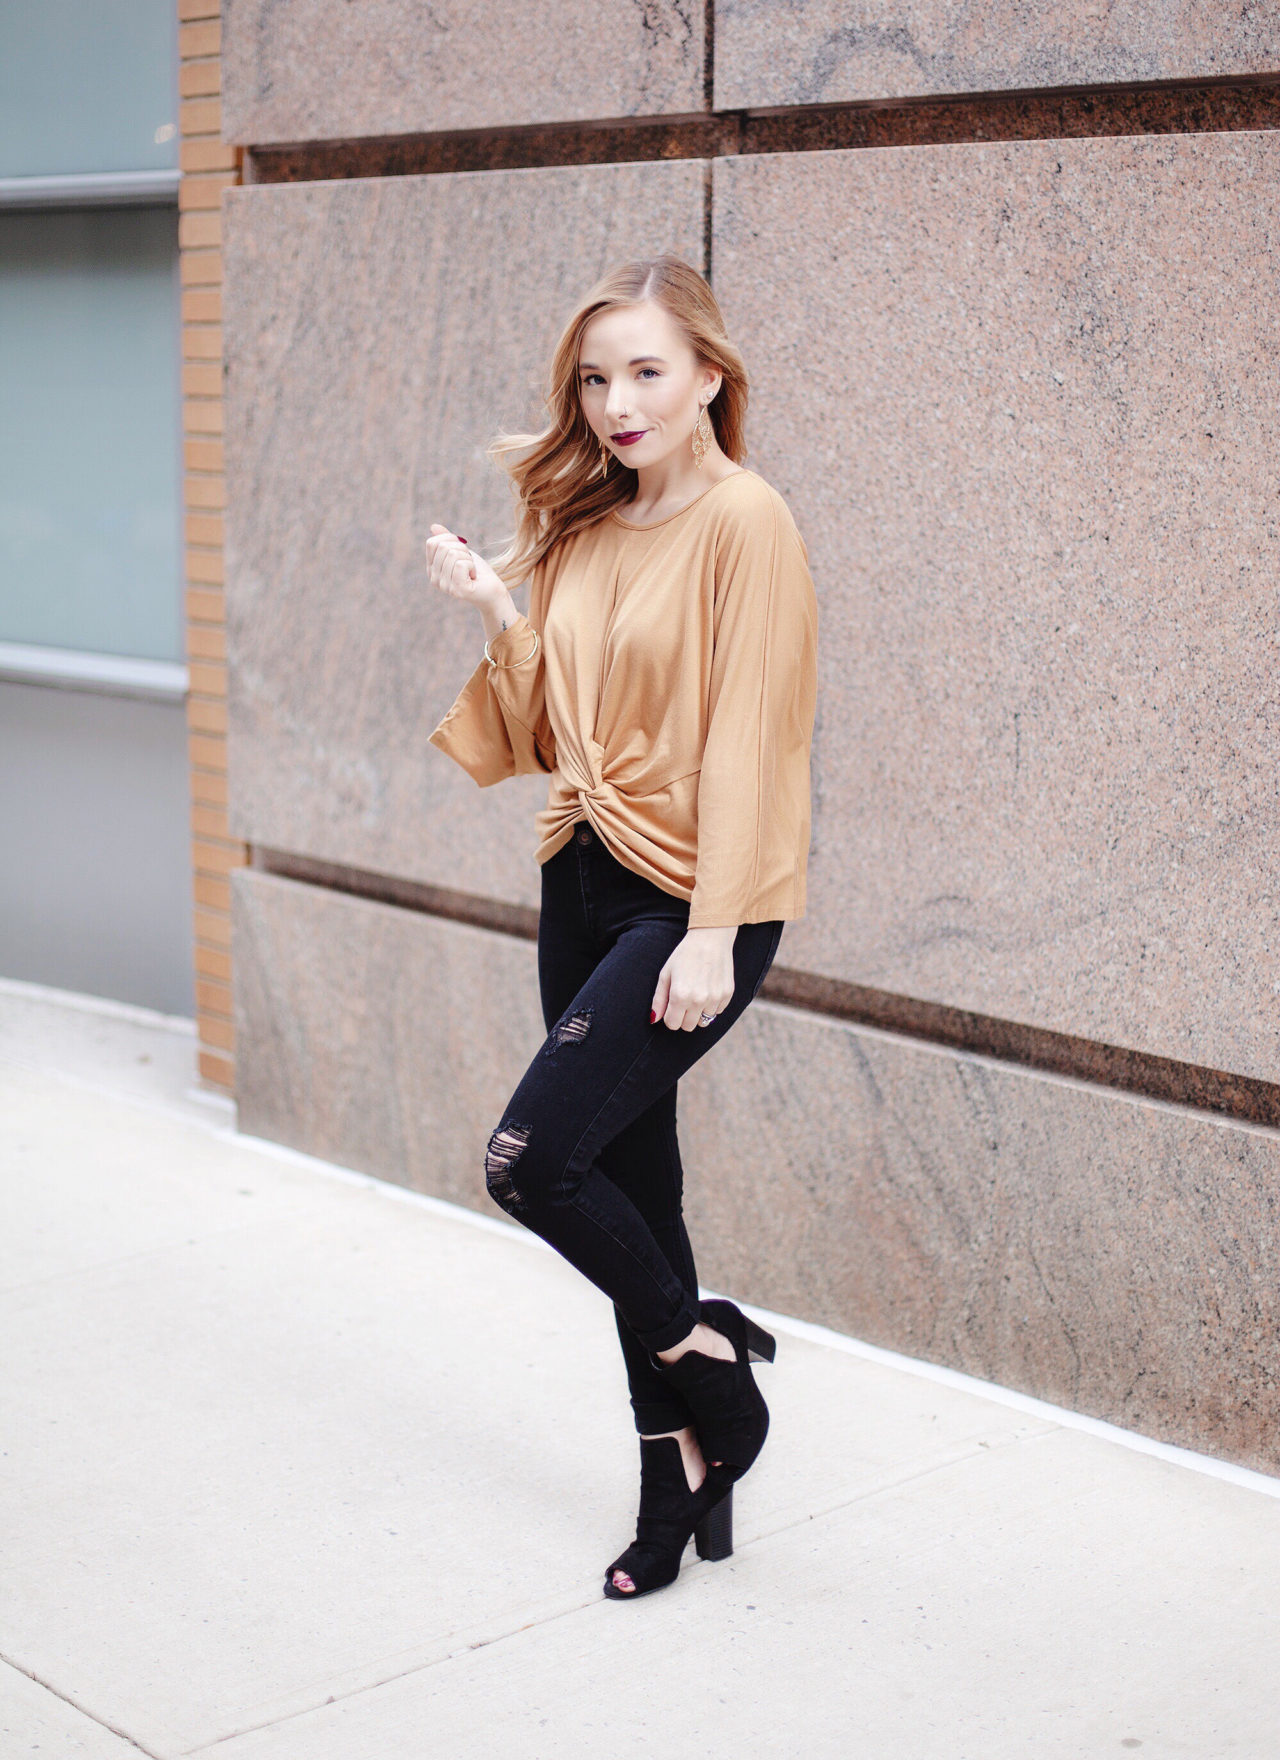 Edgy Outfit For Fall